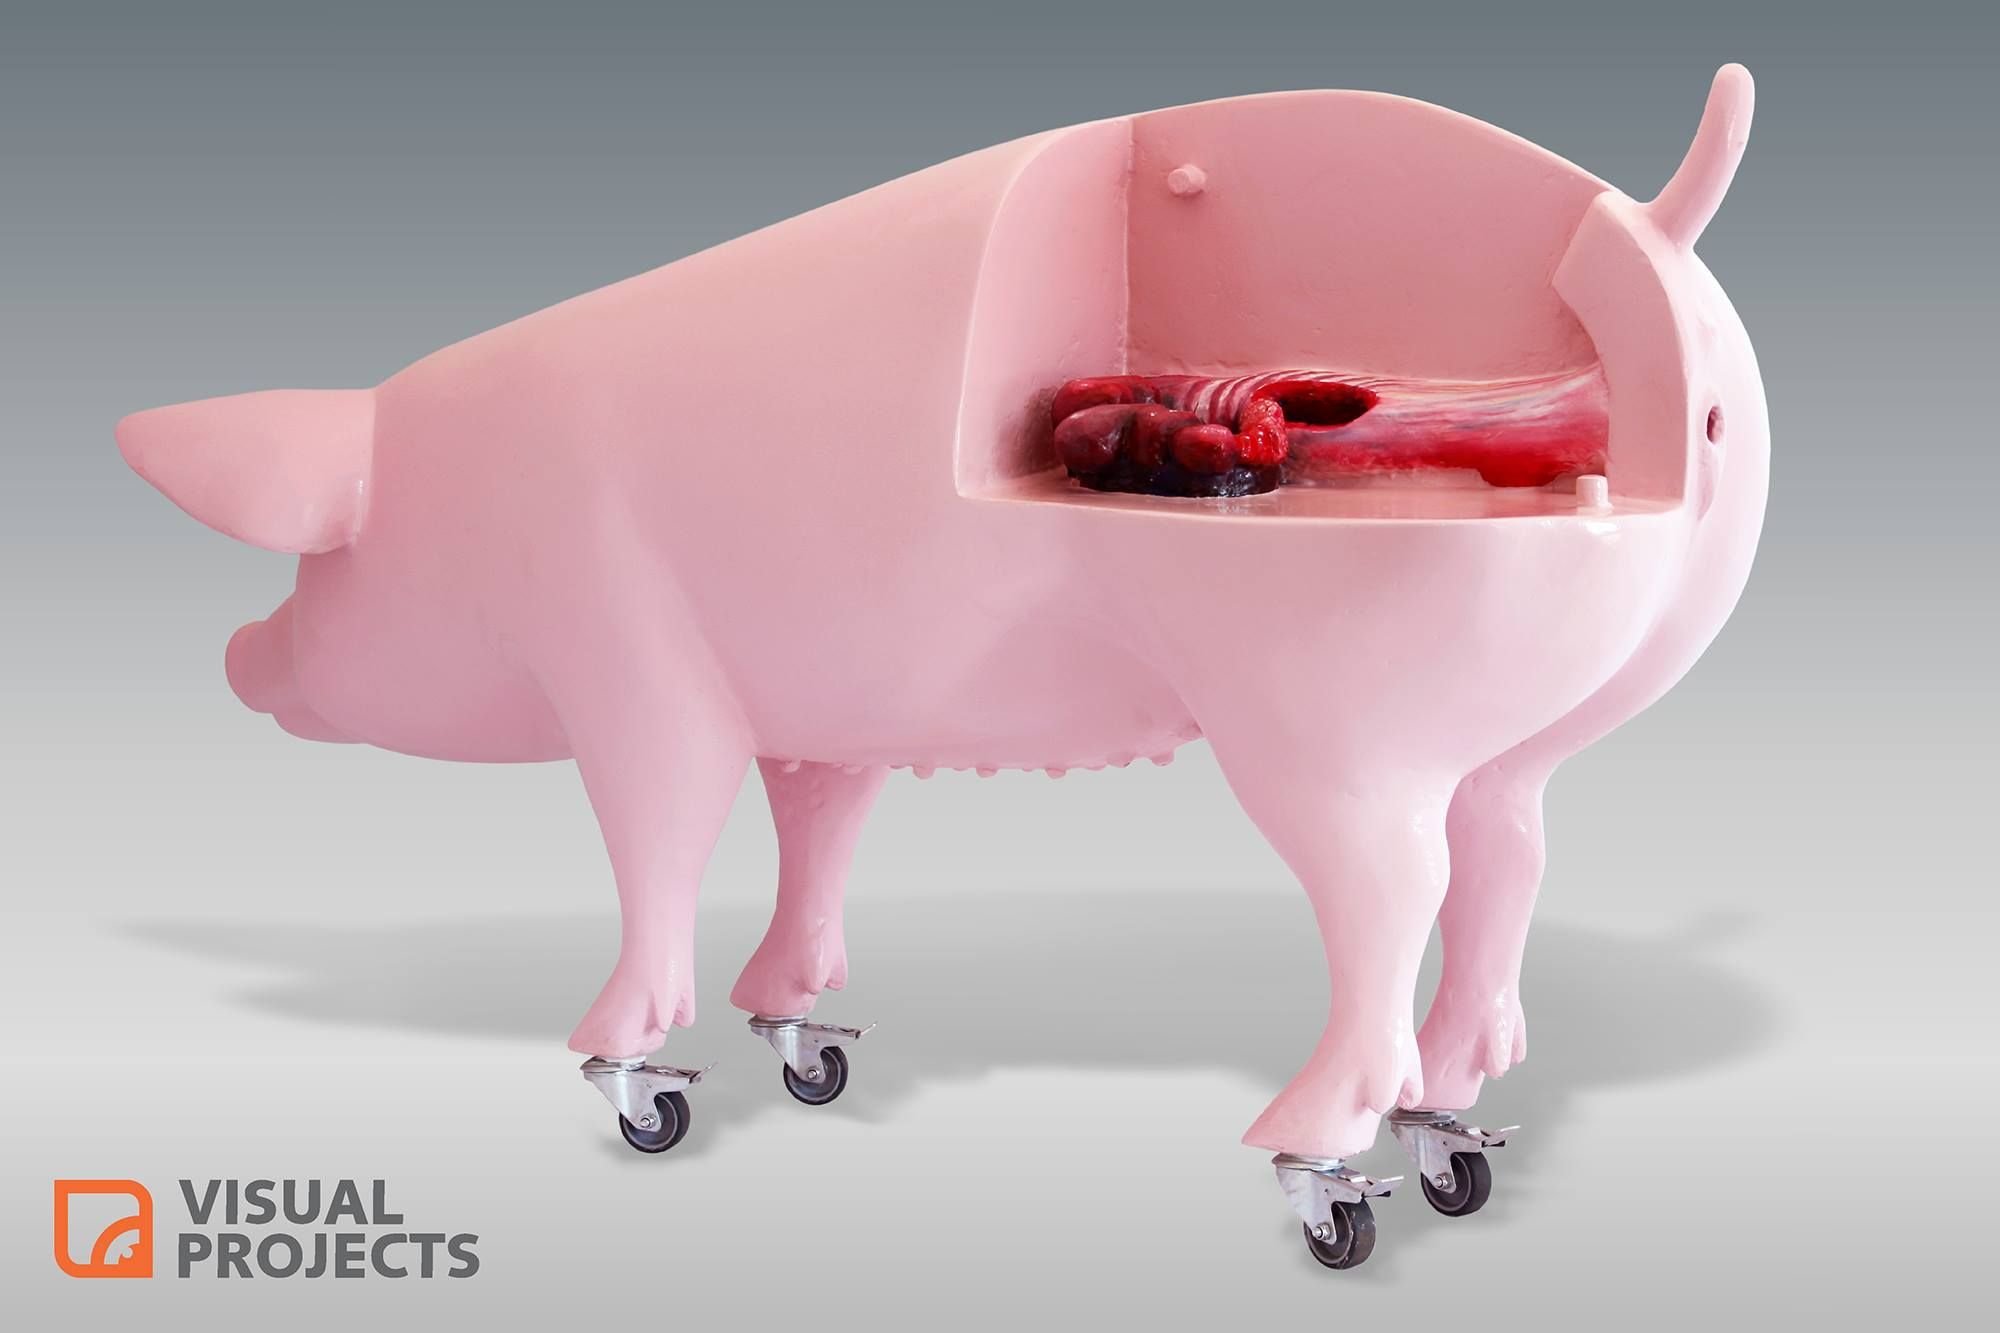 Artificial insemination ai training sow life size